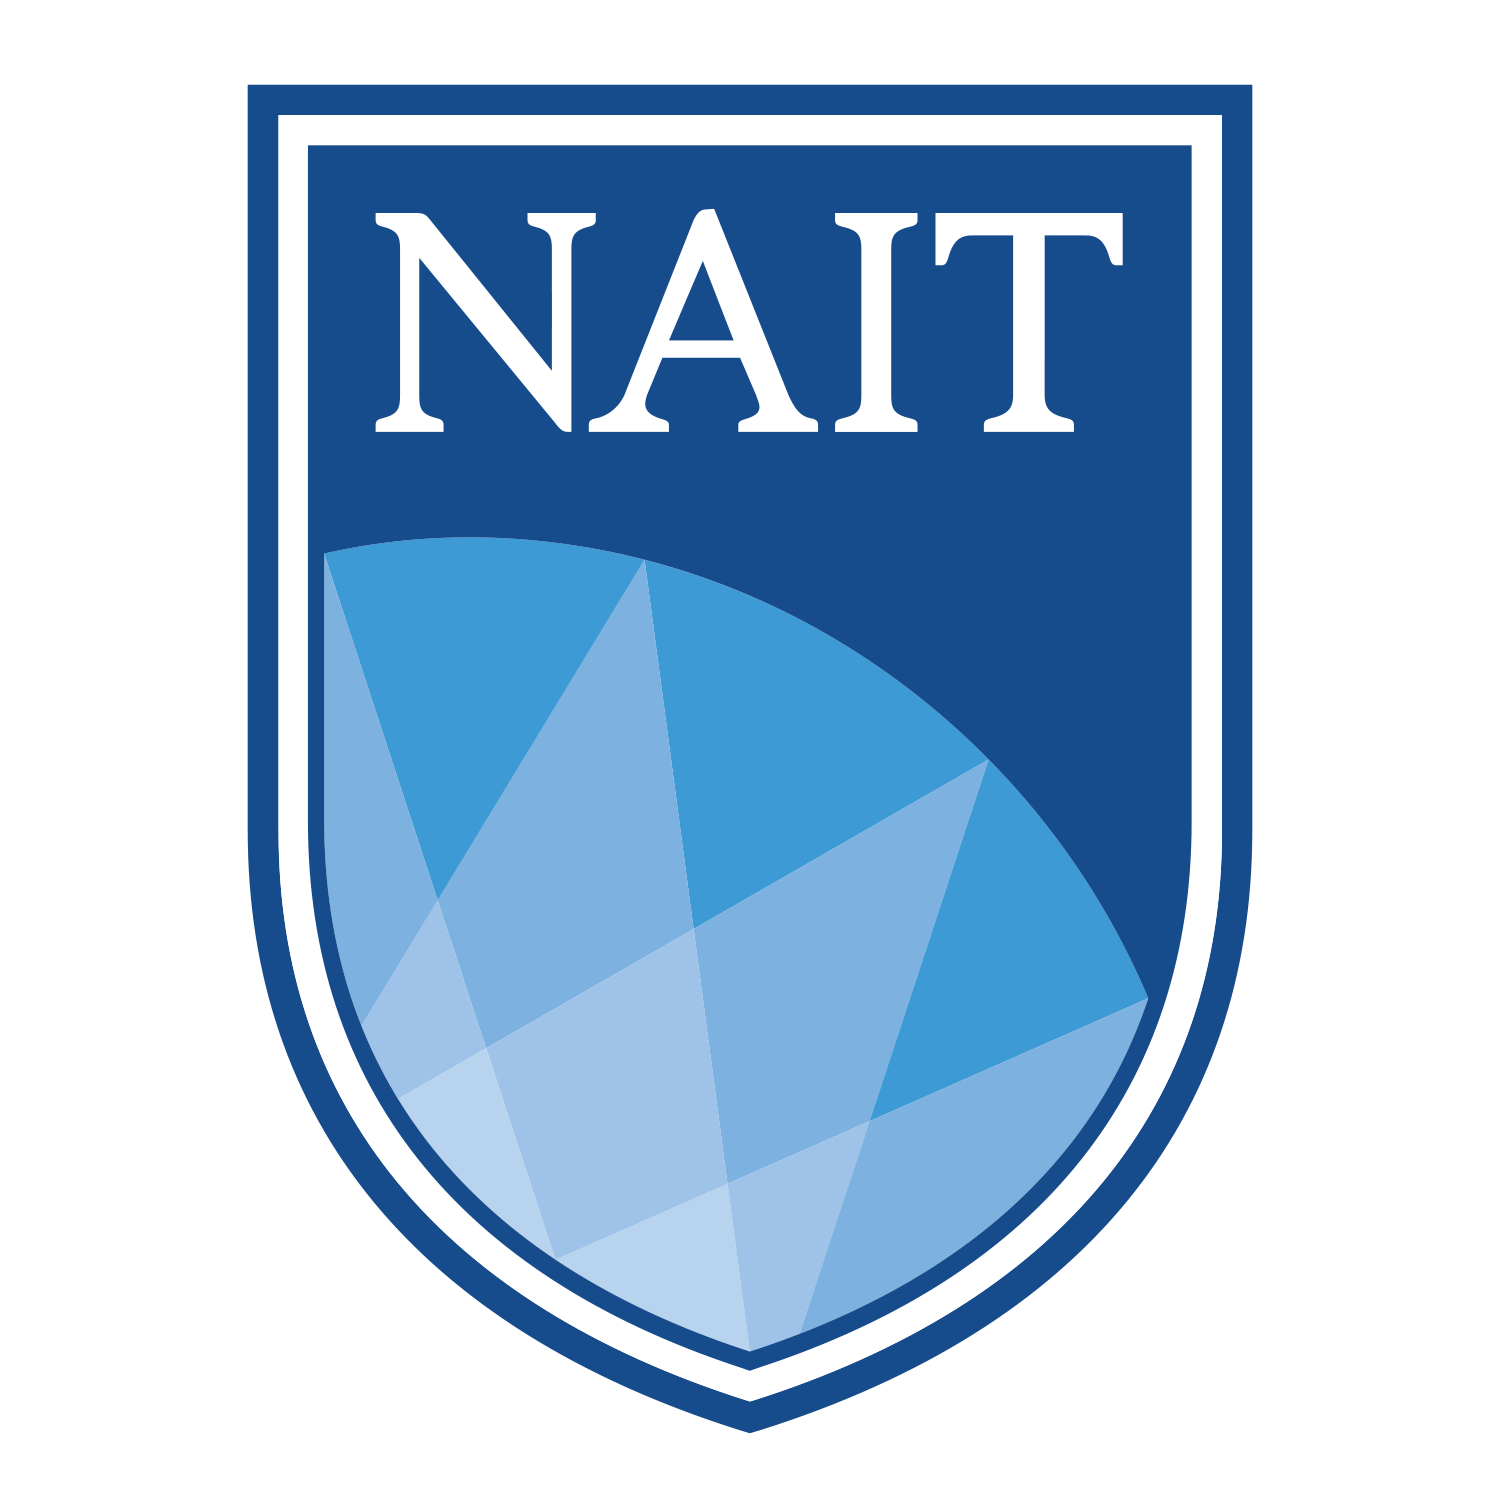 NAIT EVACUATED AFTER EDMONTON POLICE WERE CALLED ABOUT A SUSPICIOUS PACKAGE